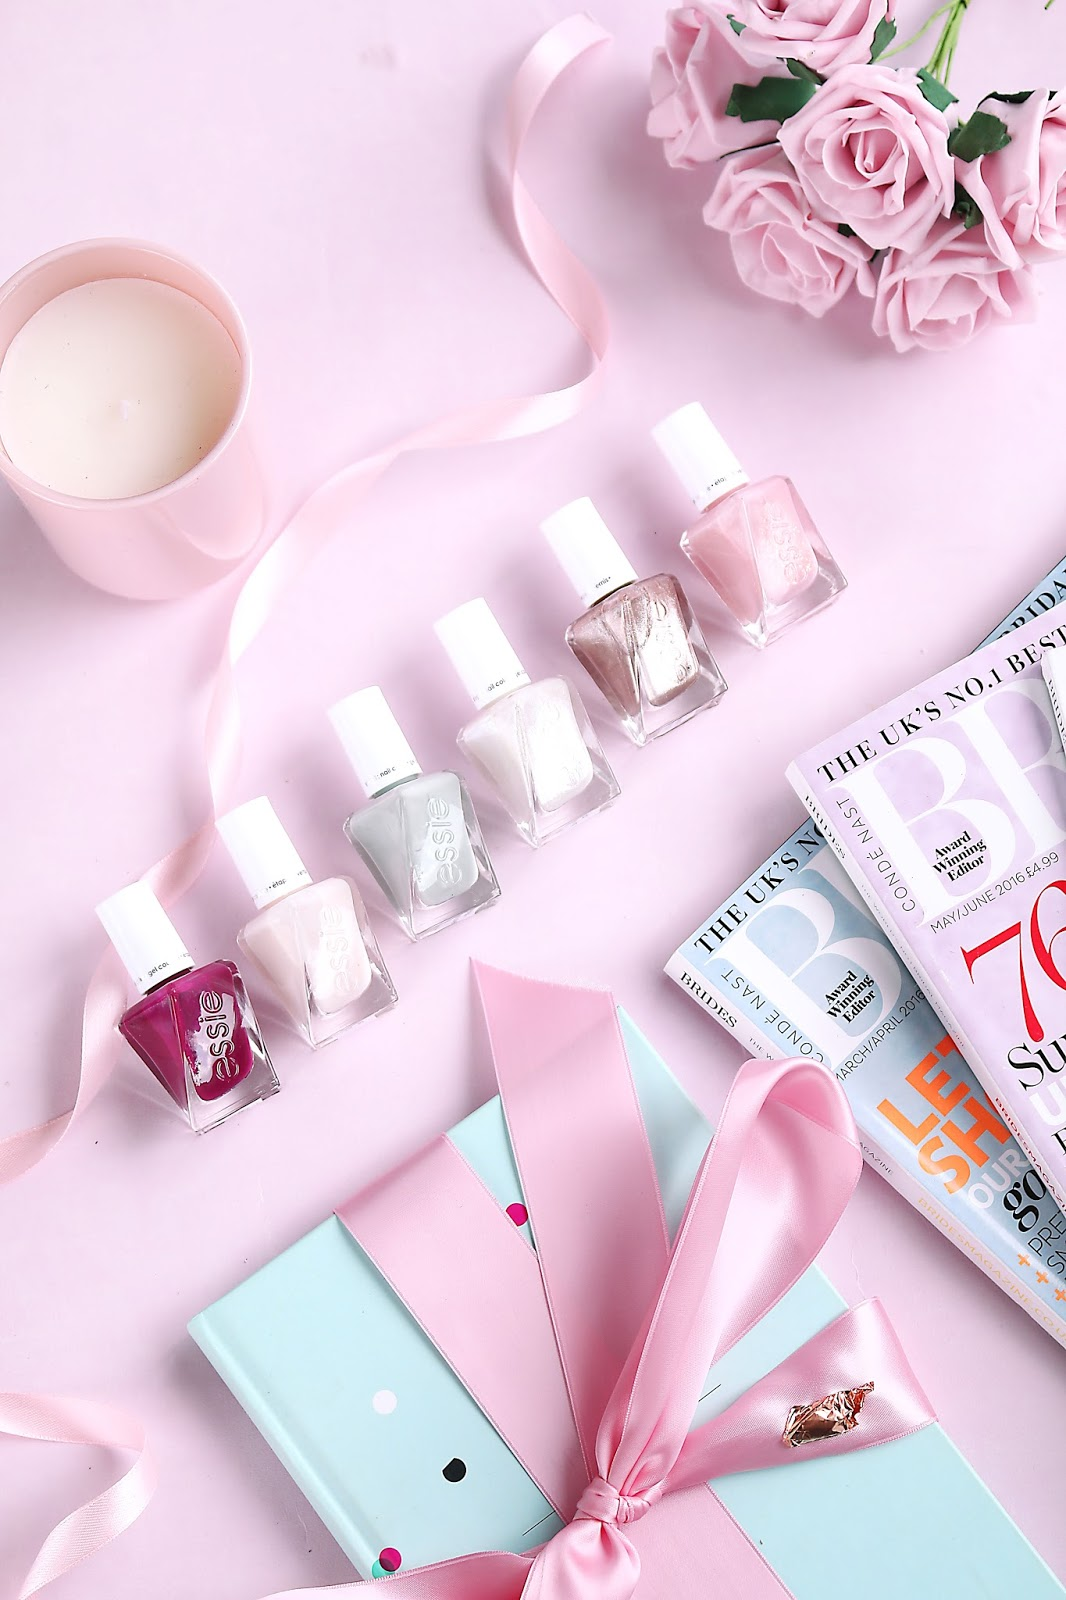 Beauty, Nails, essie, Wedding, Wedding Beauty, Drugstore,  essie gel couture bridal collection by Monique Lhuillier, essie gel couture range, wedding nails, bridal nails